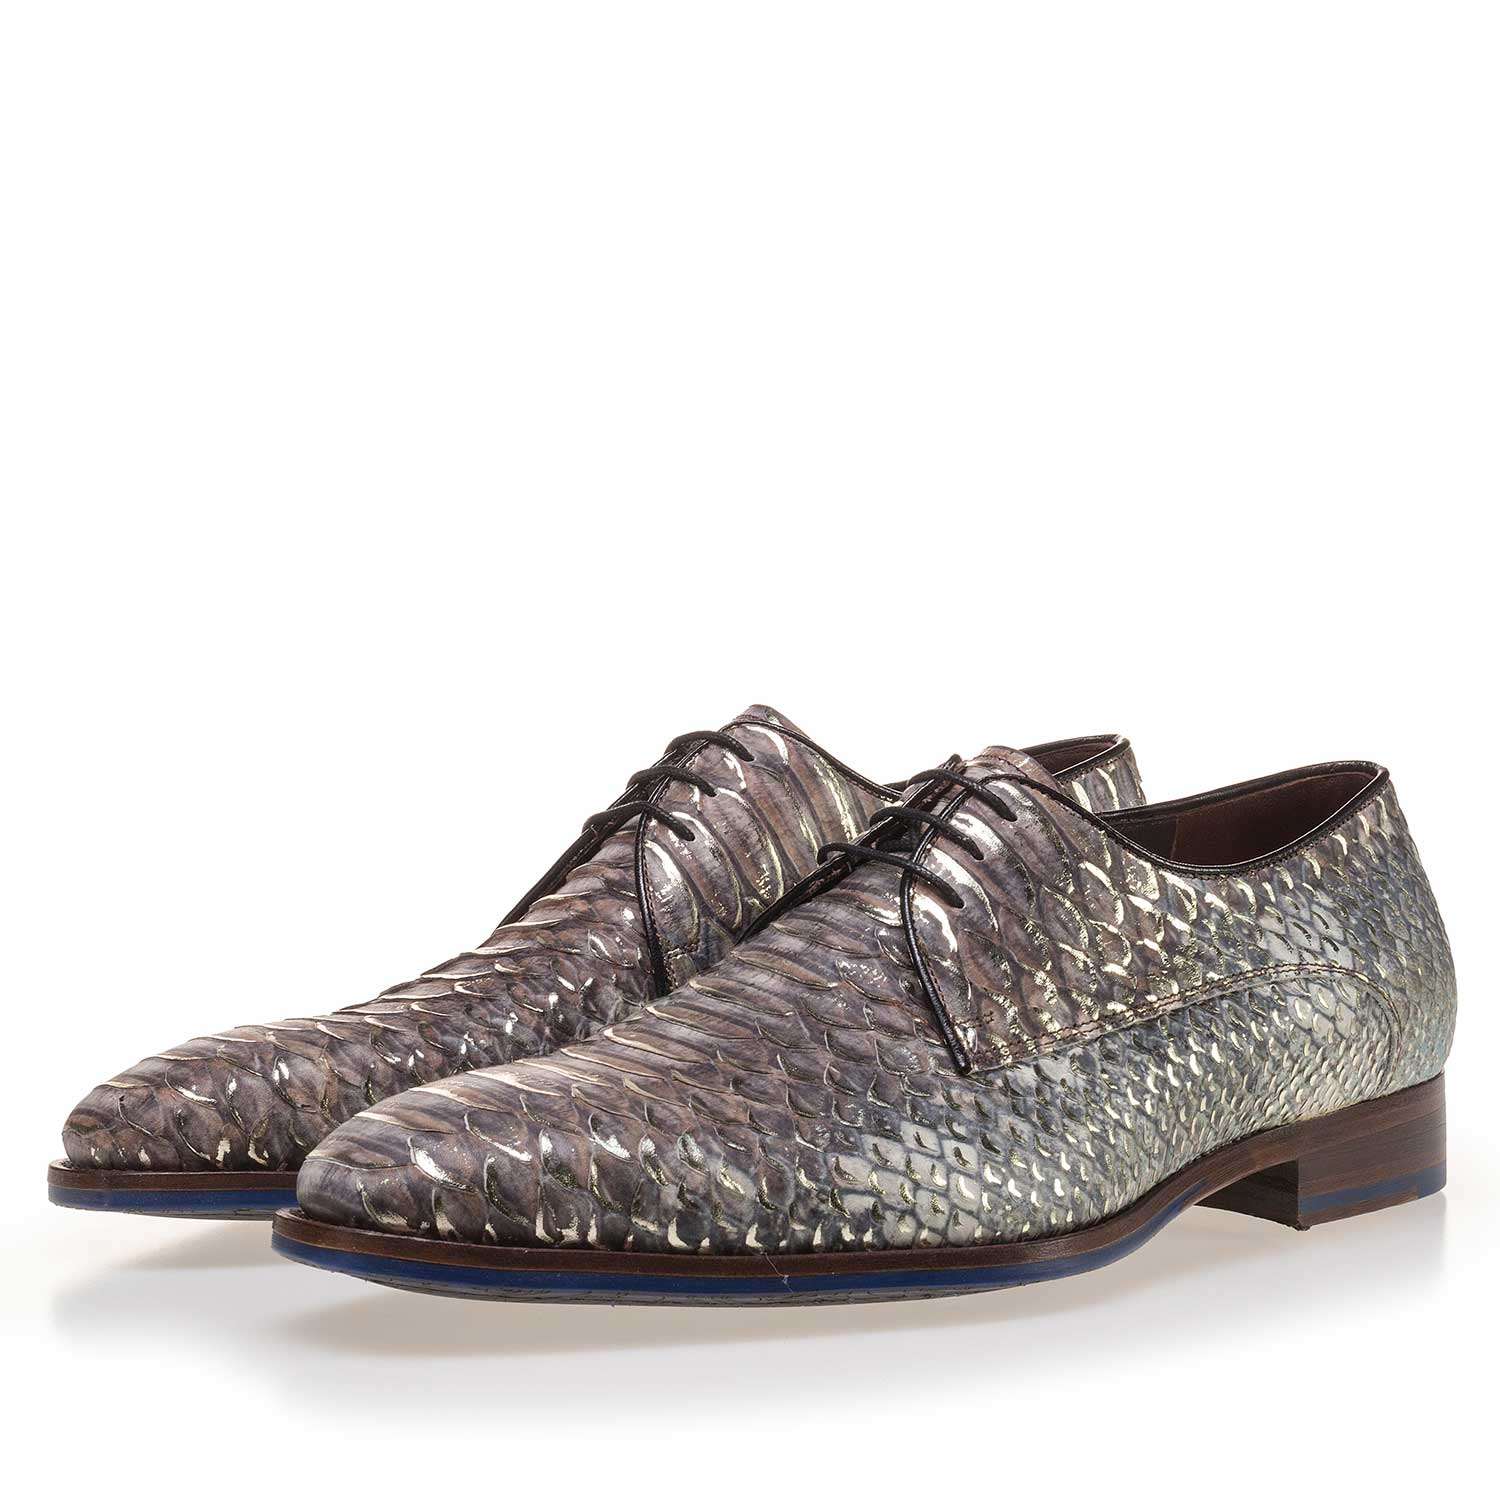 14170/01 - Taupe-coloured leather lace shoe finished with a snake print